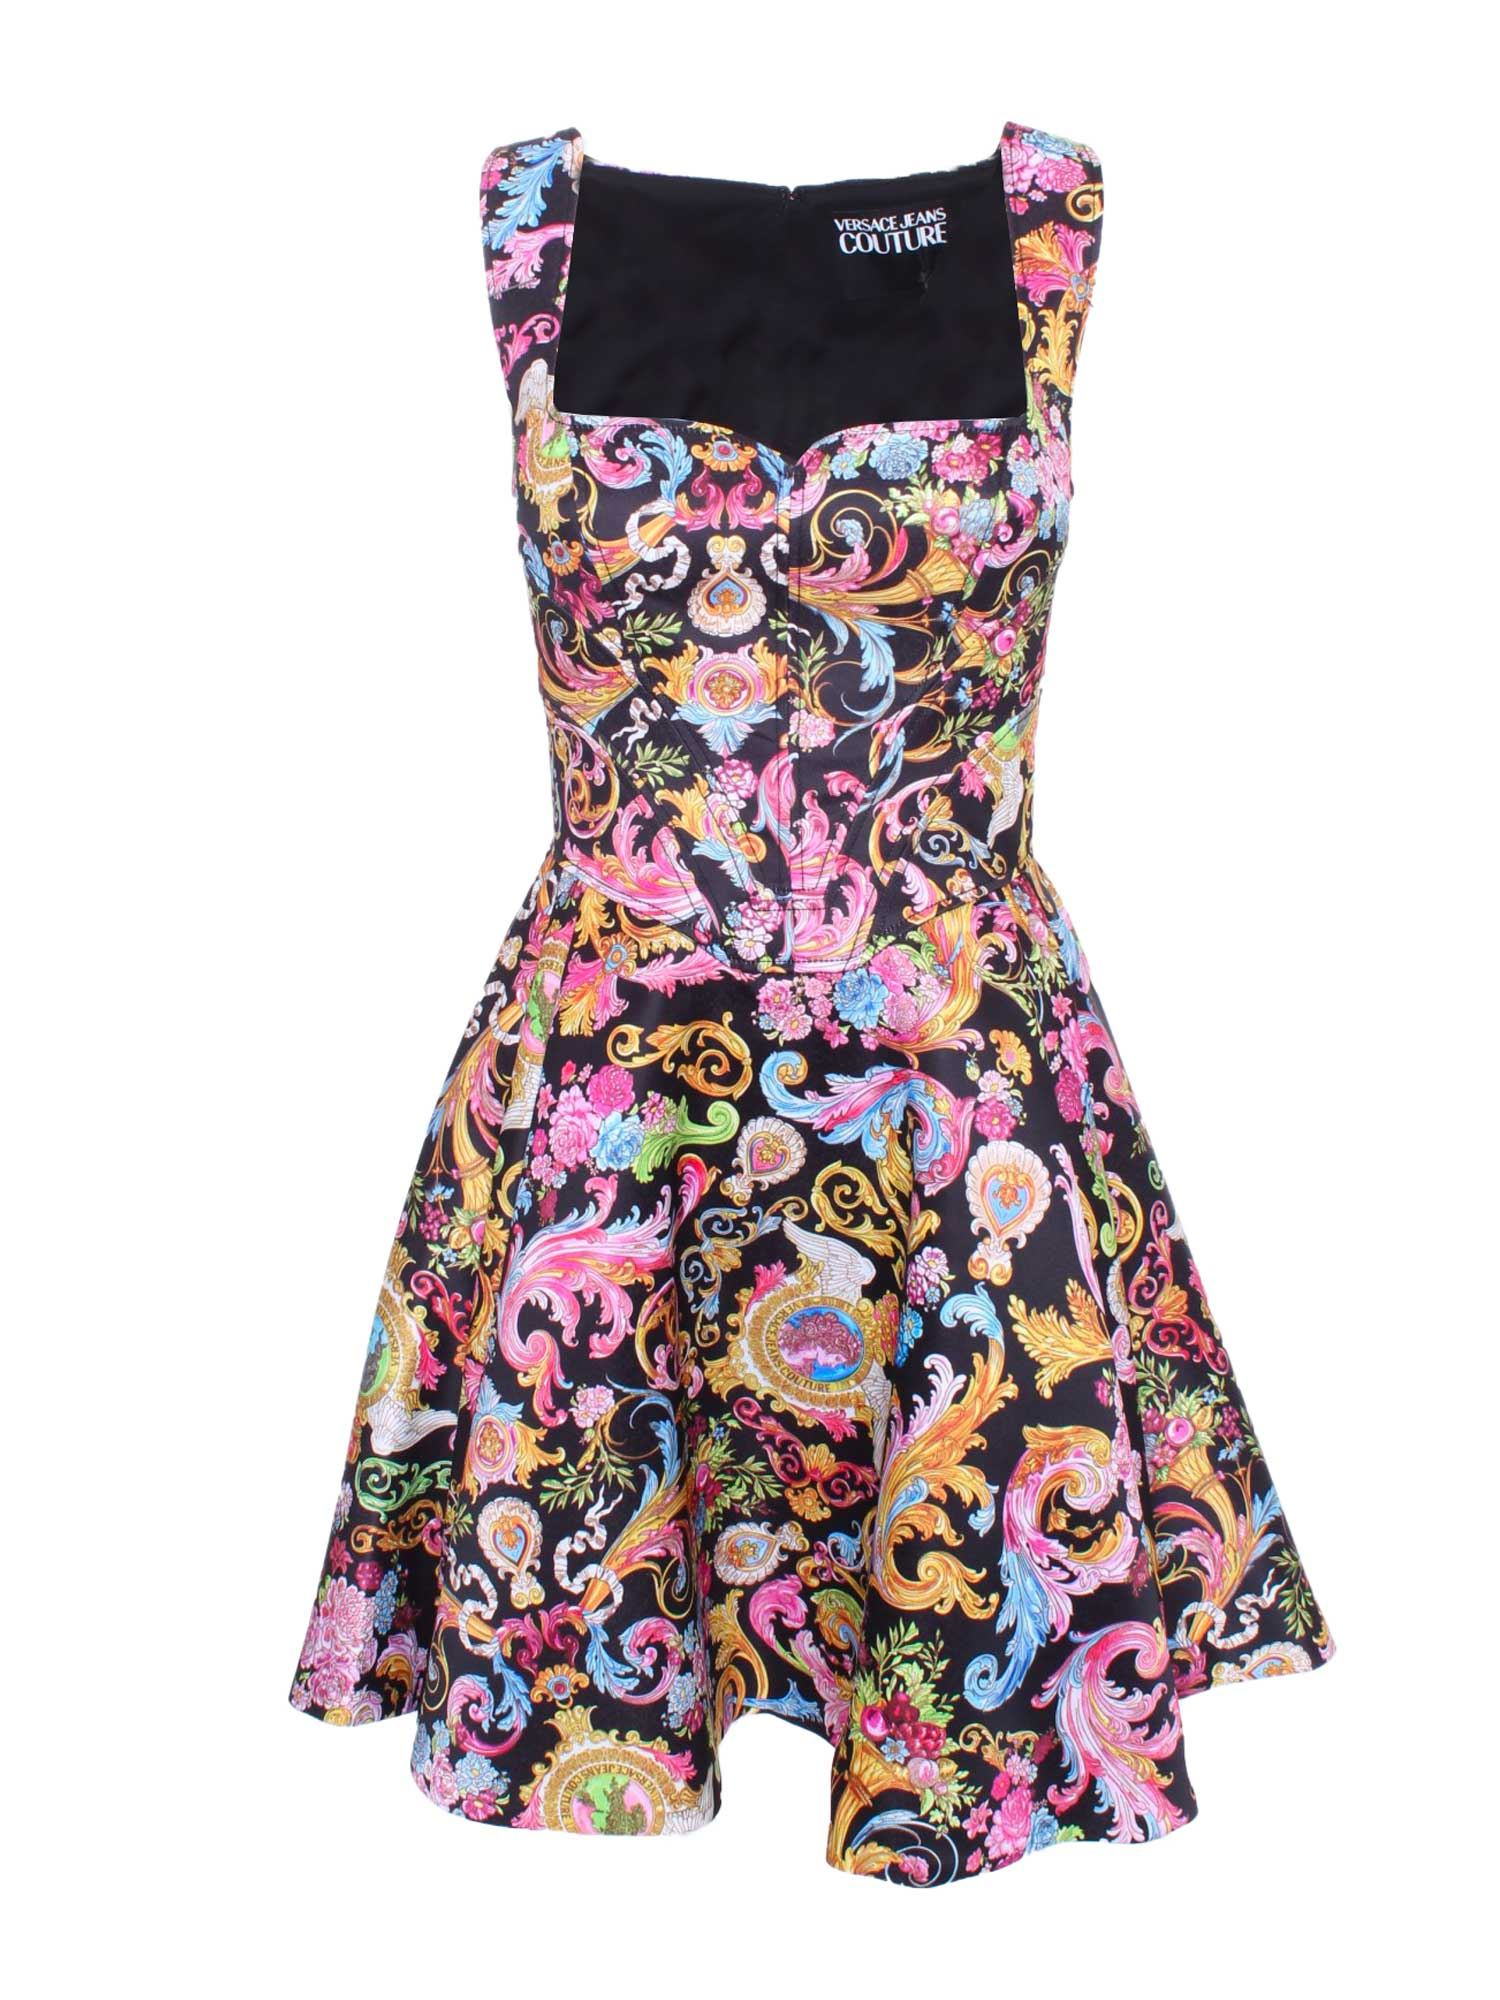 Versace Jeans Couture Dresses ROCOCO PRINTED DRESS